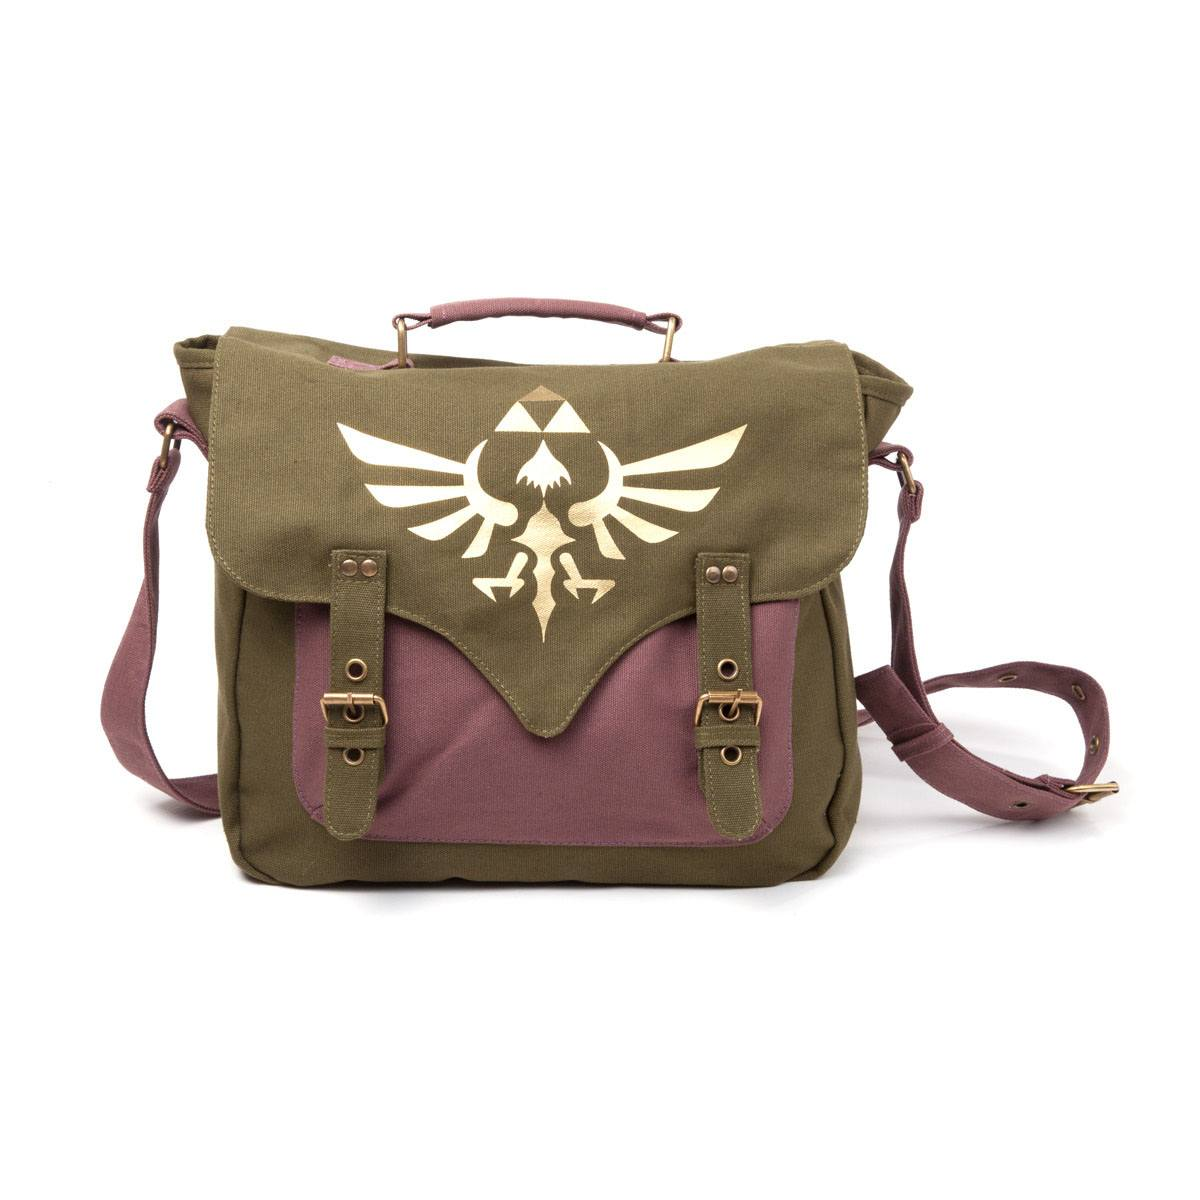 The Legend of Zelda Messenger Bag Golden Triforce